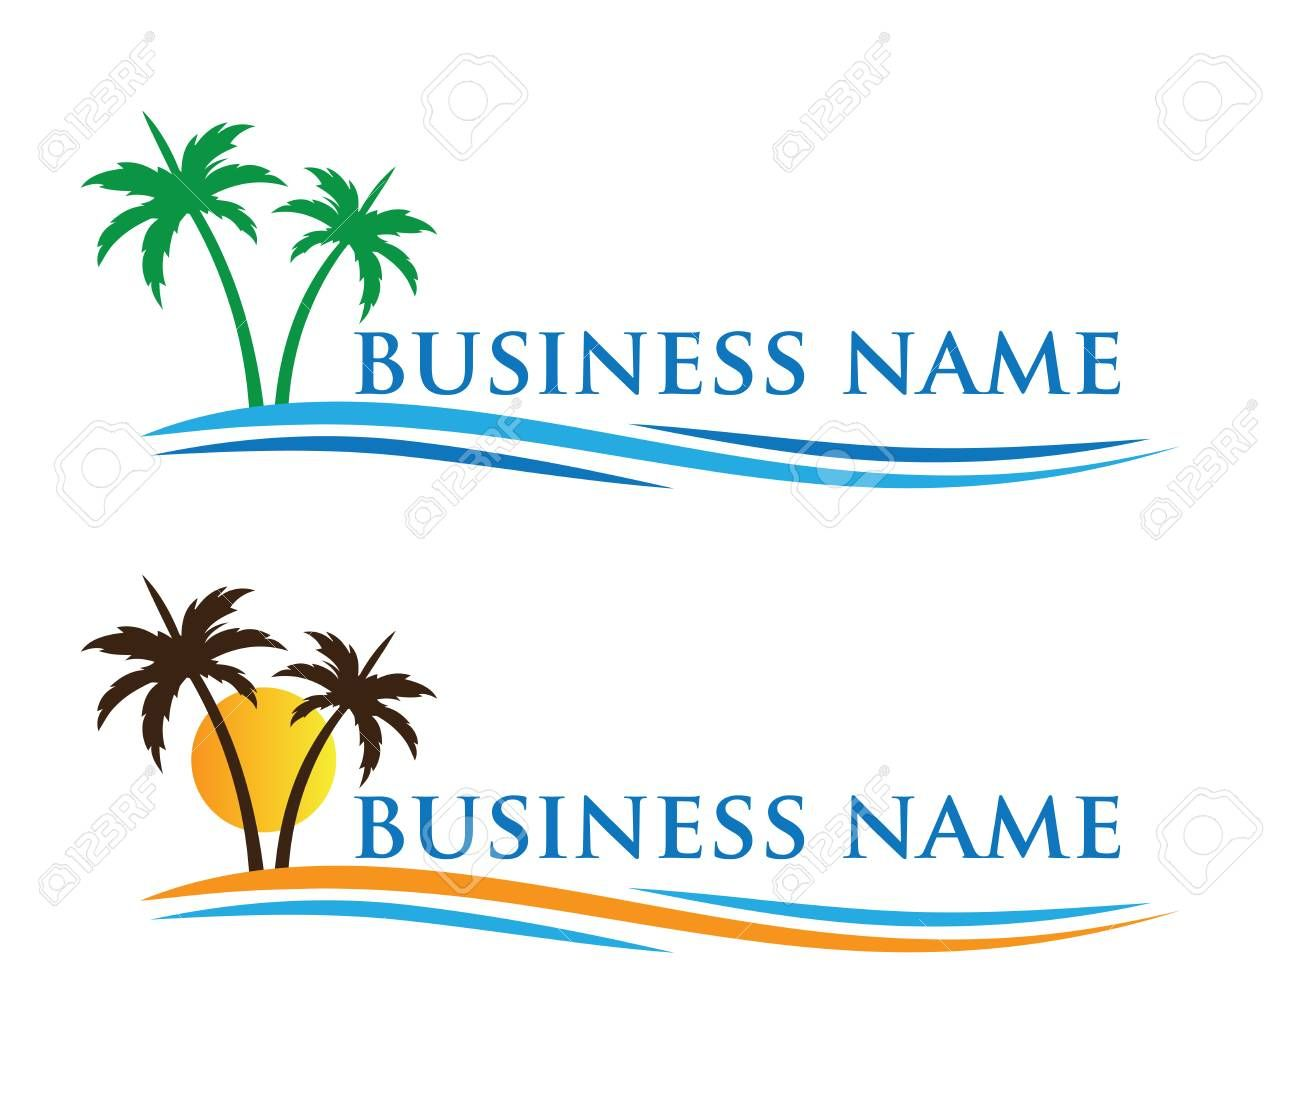 hotel tourism holiday summer beach coconut palm tree vector logo design for resort home stay hospit